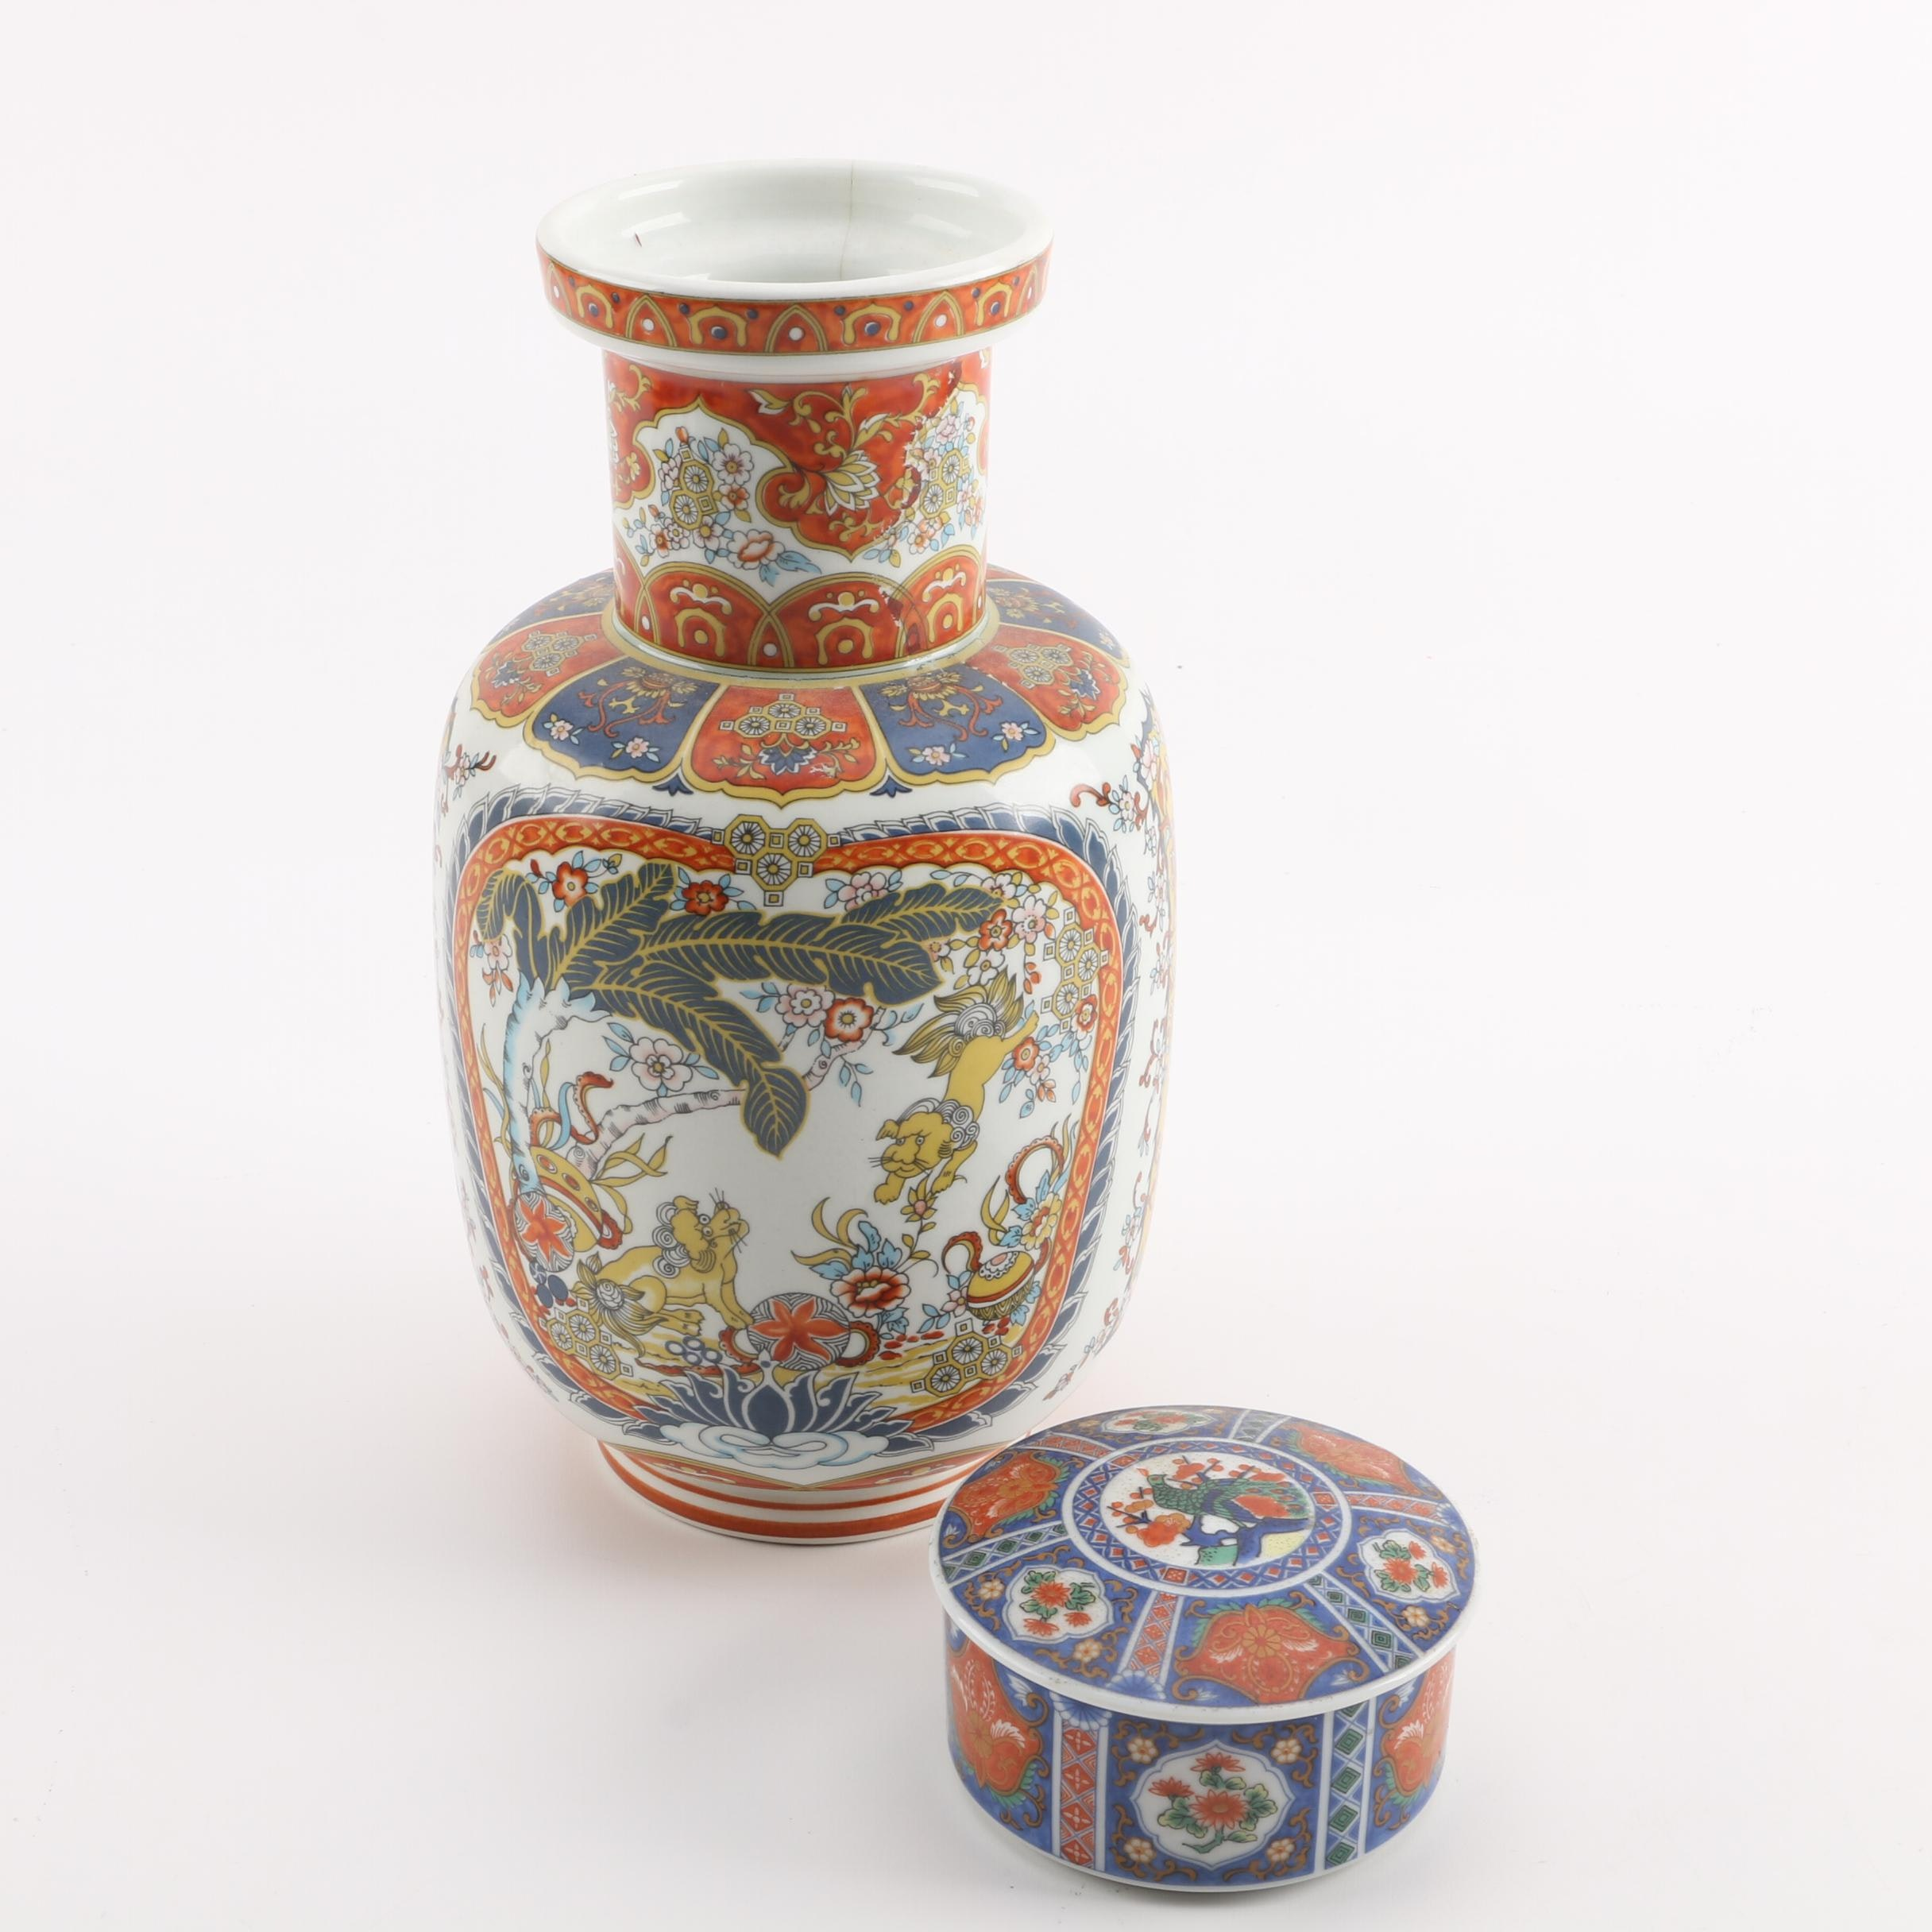 Chinoiserie Ceramic Vase and Japanese Lidded Box